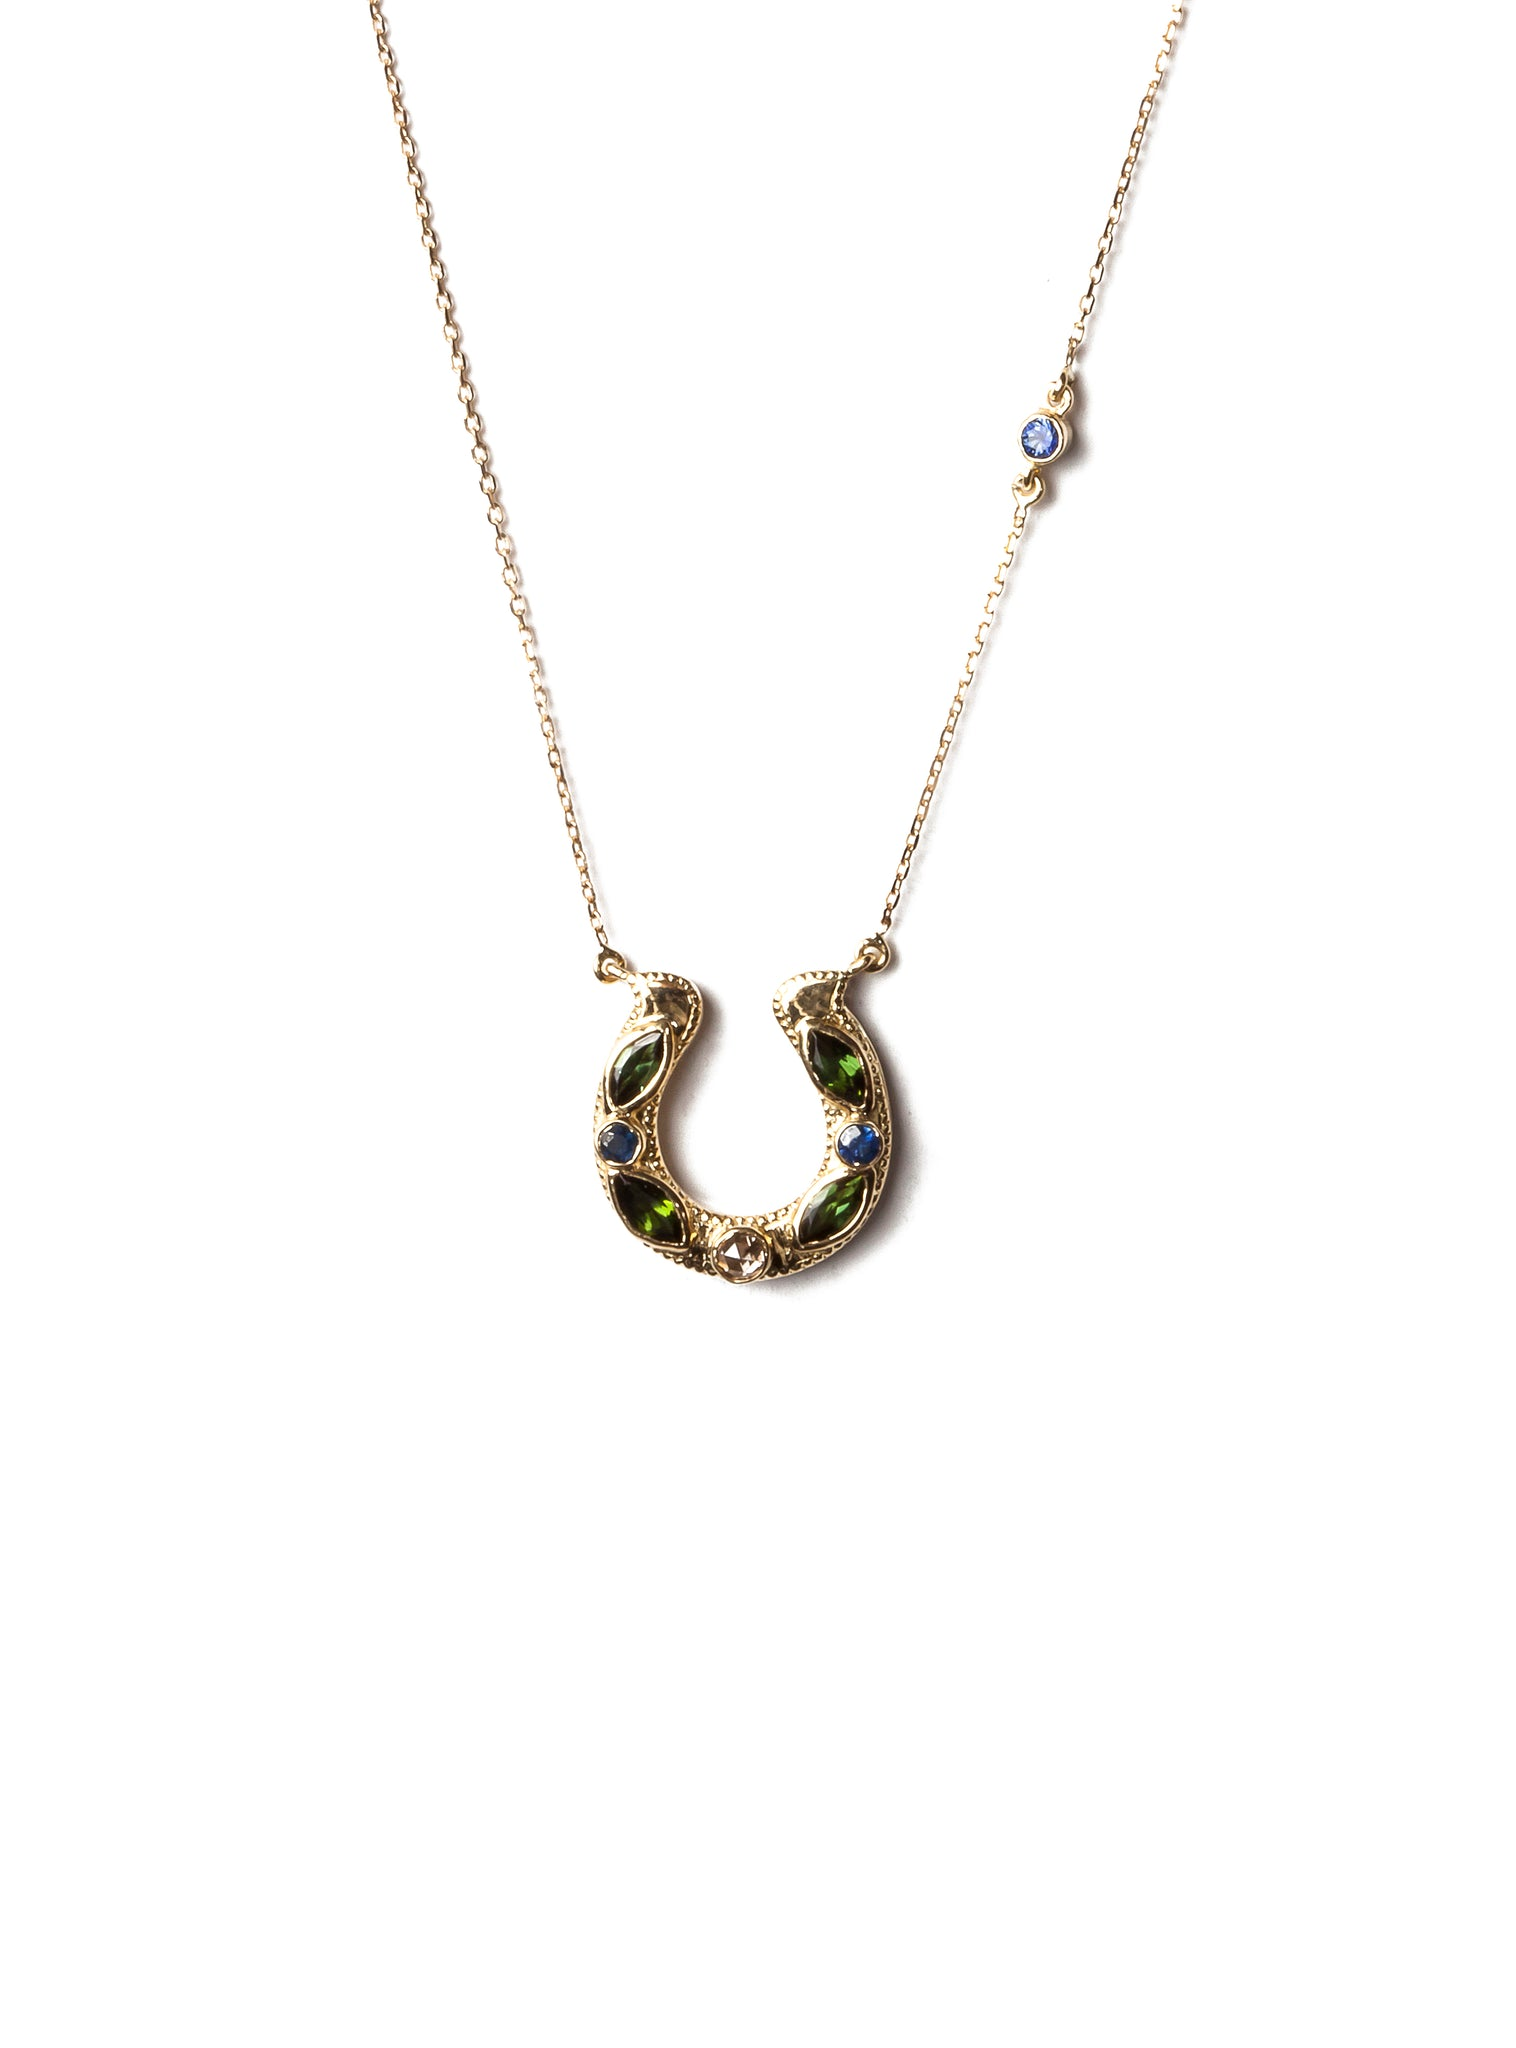 Horseshoe Necklace with Tourmaline, sapphire and Diamond